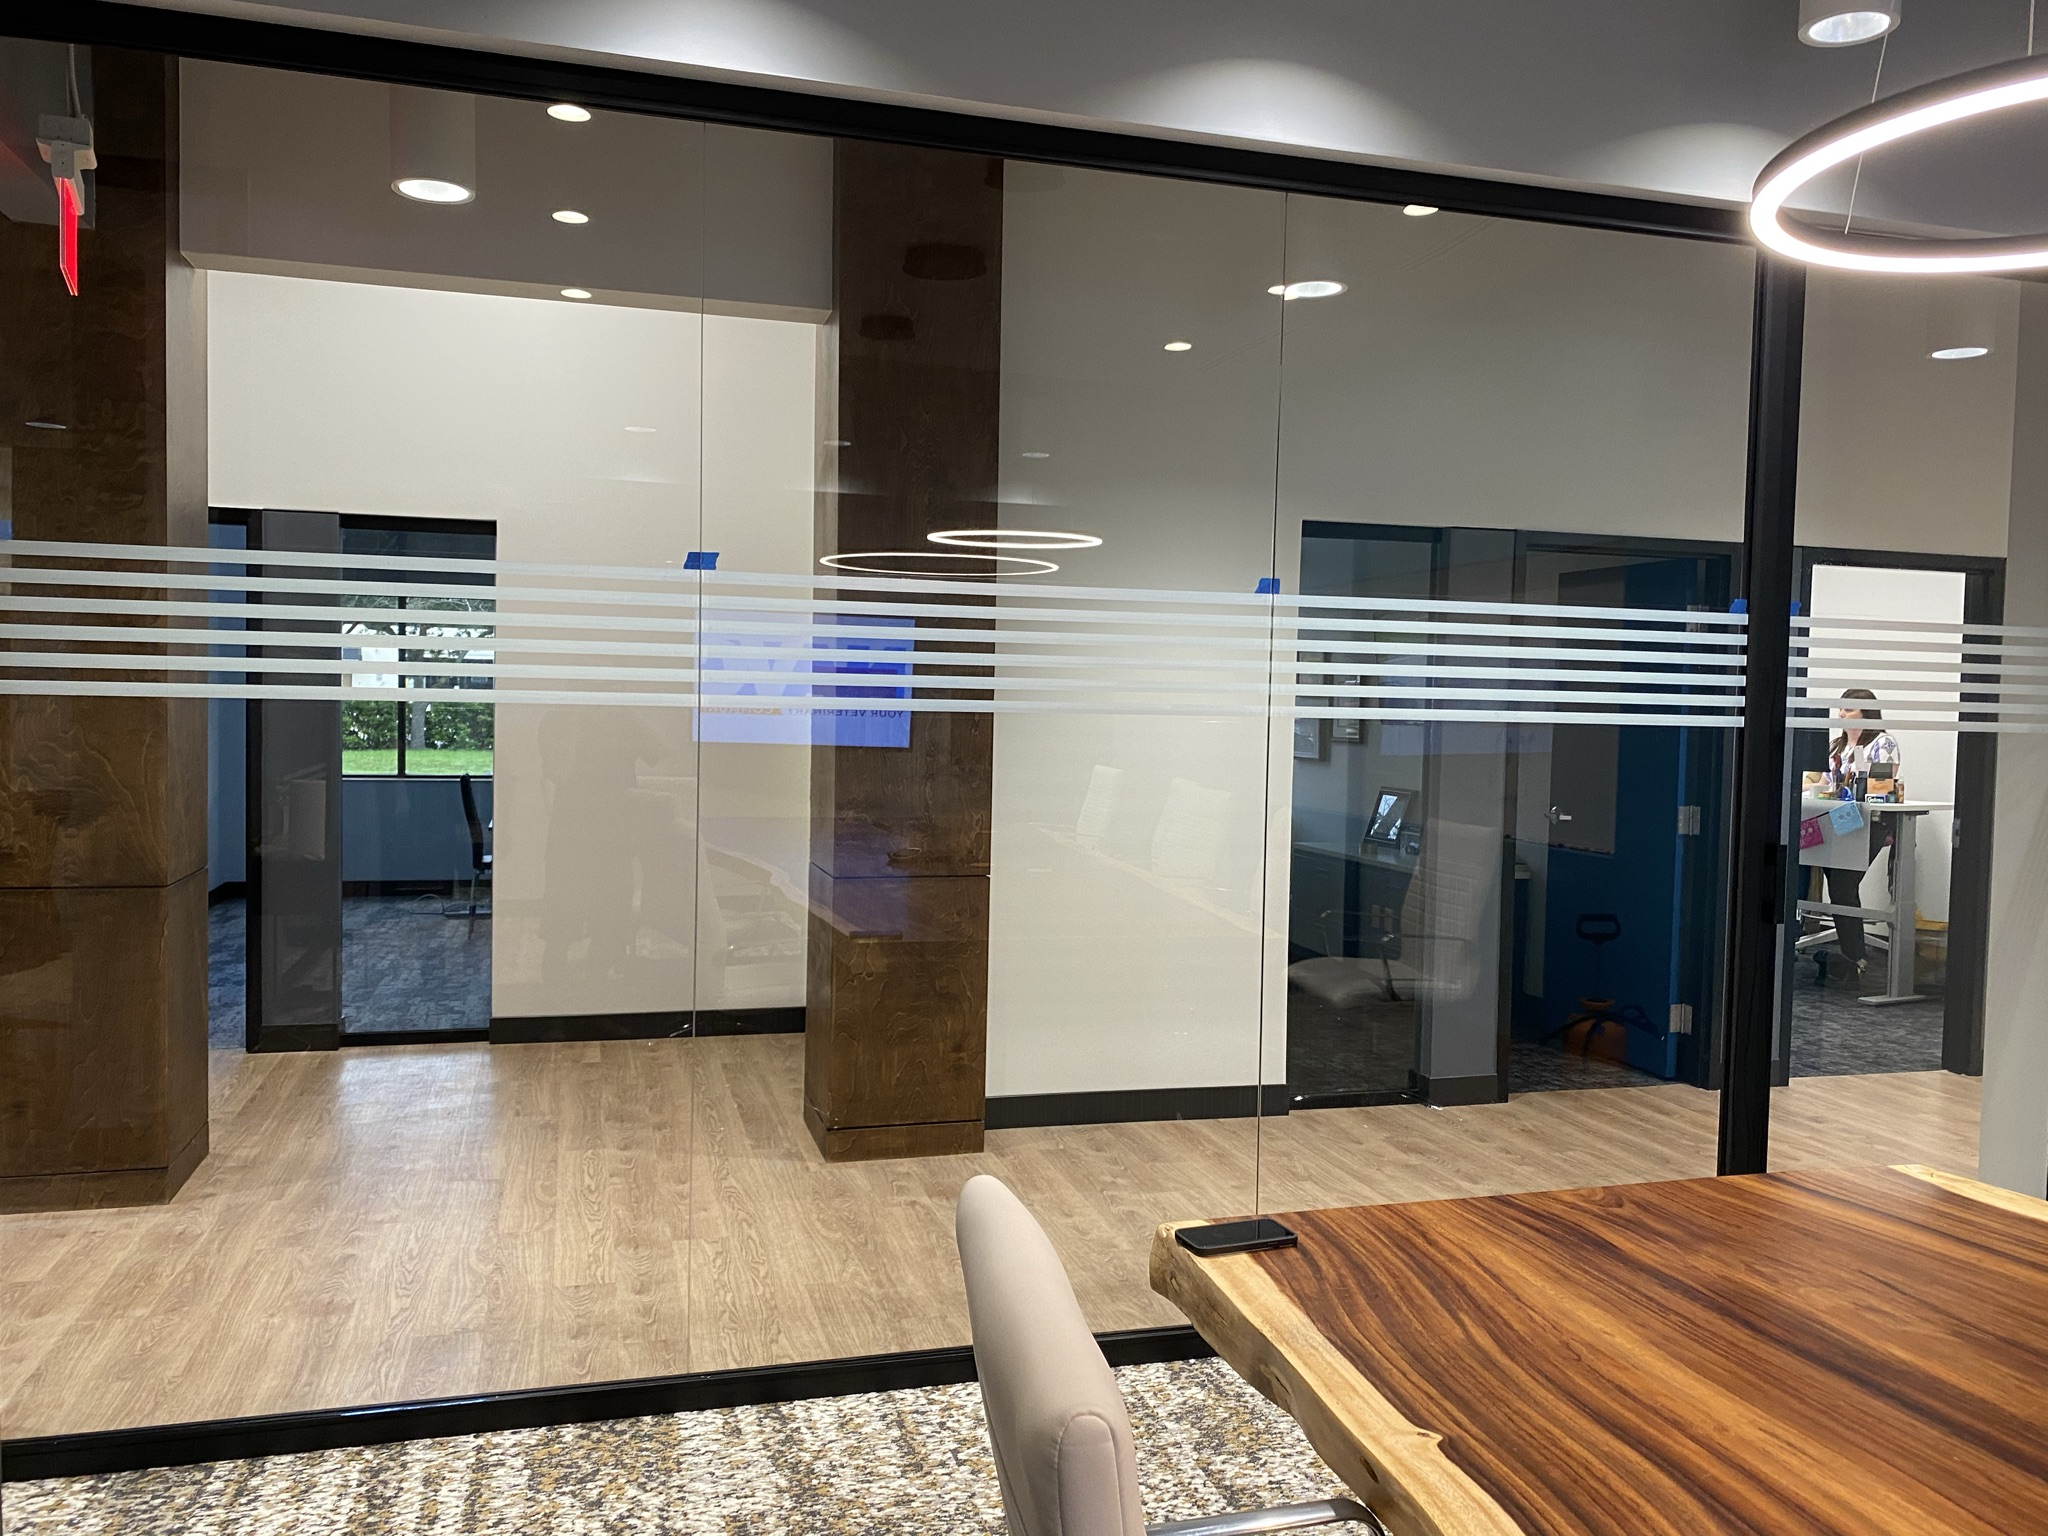 3M Decorative Window Film installed by Tint By Masters